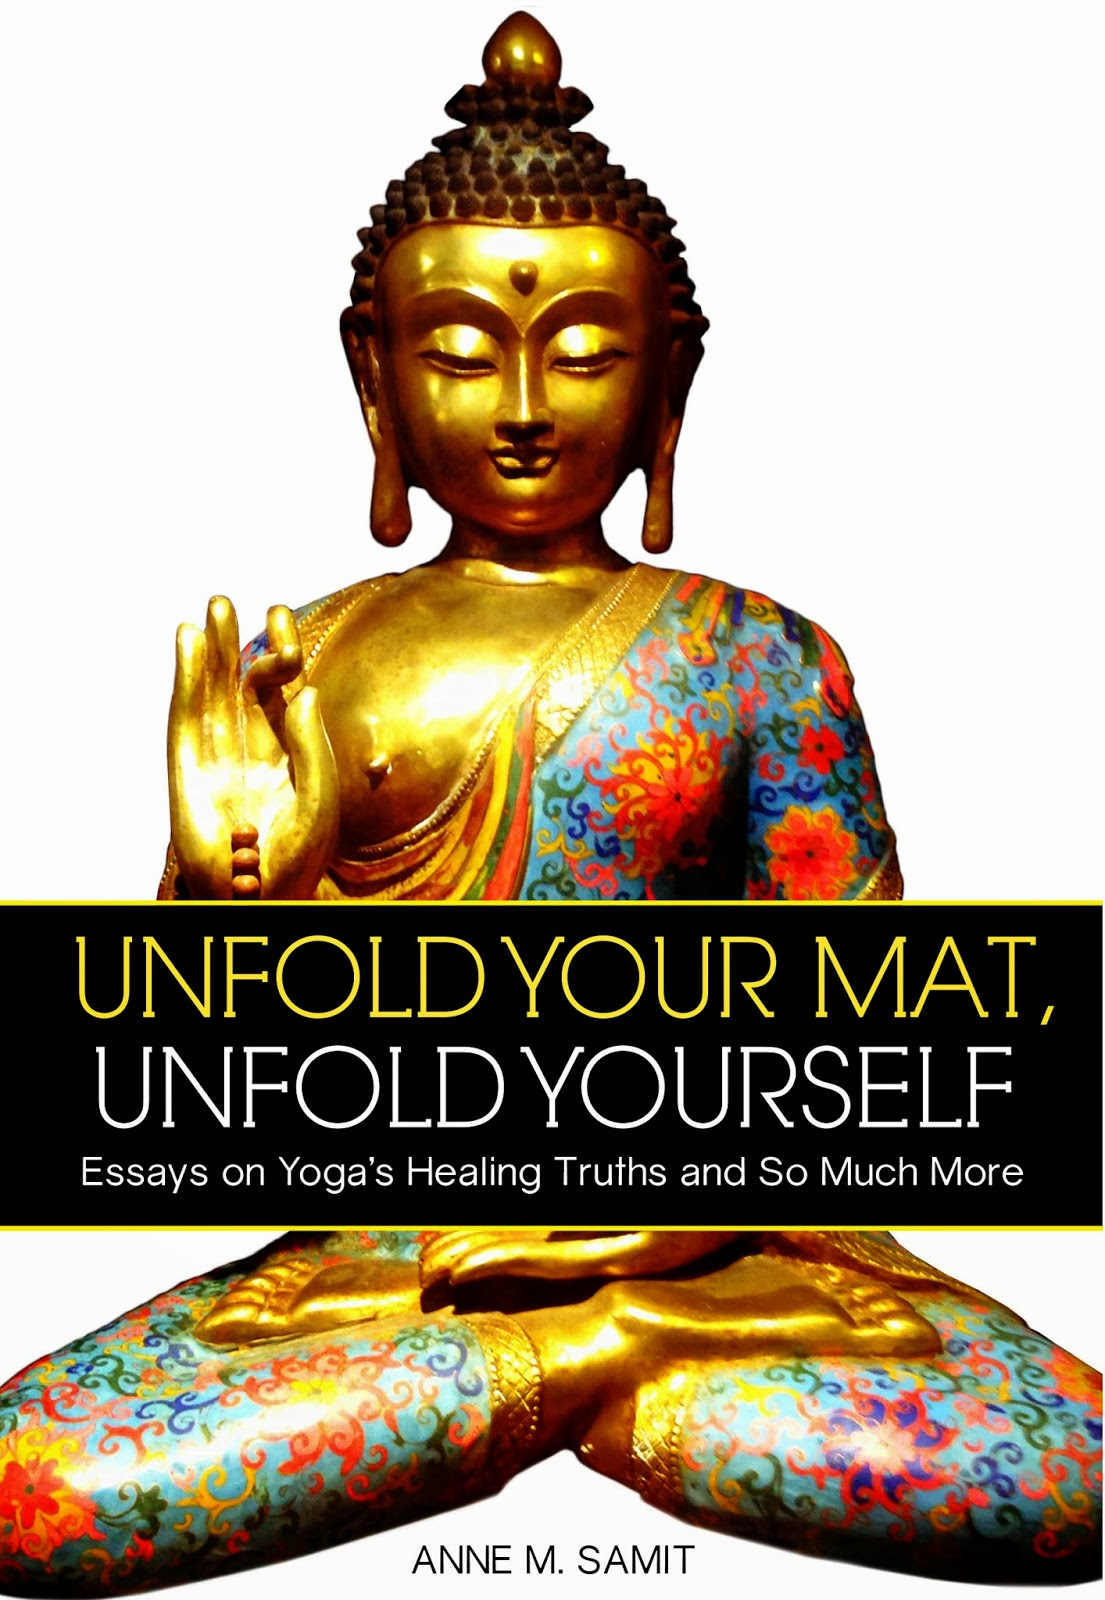 anne samit unfold your mat unfold yourself yoga practice yoga essays anne samit